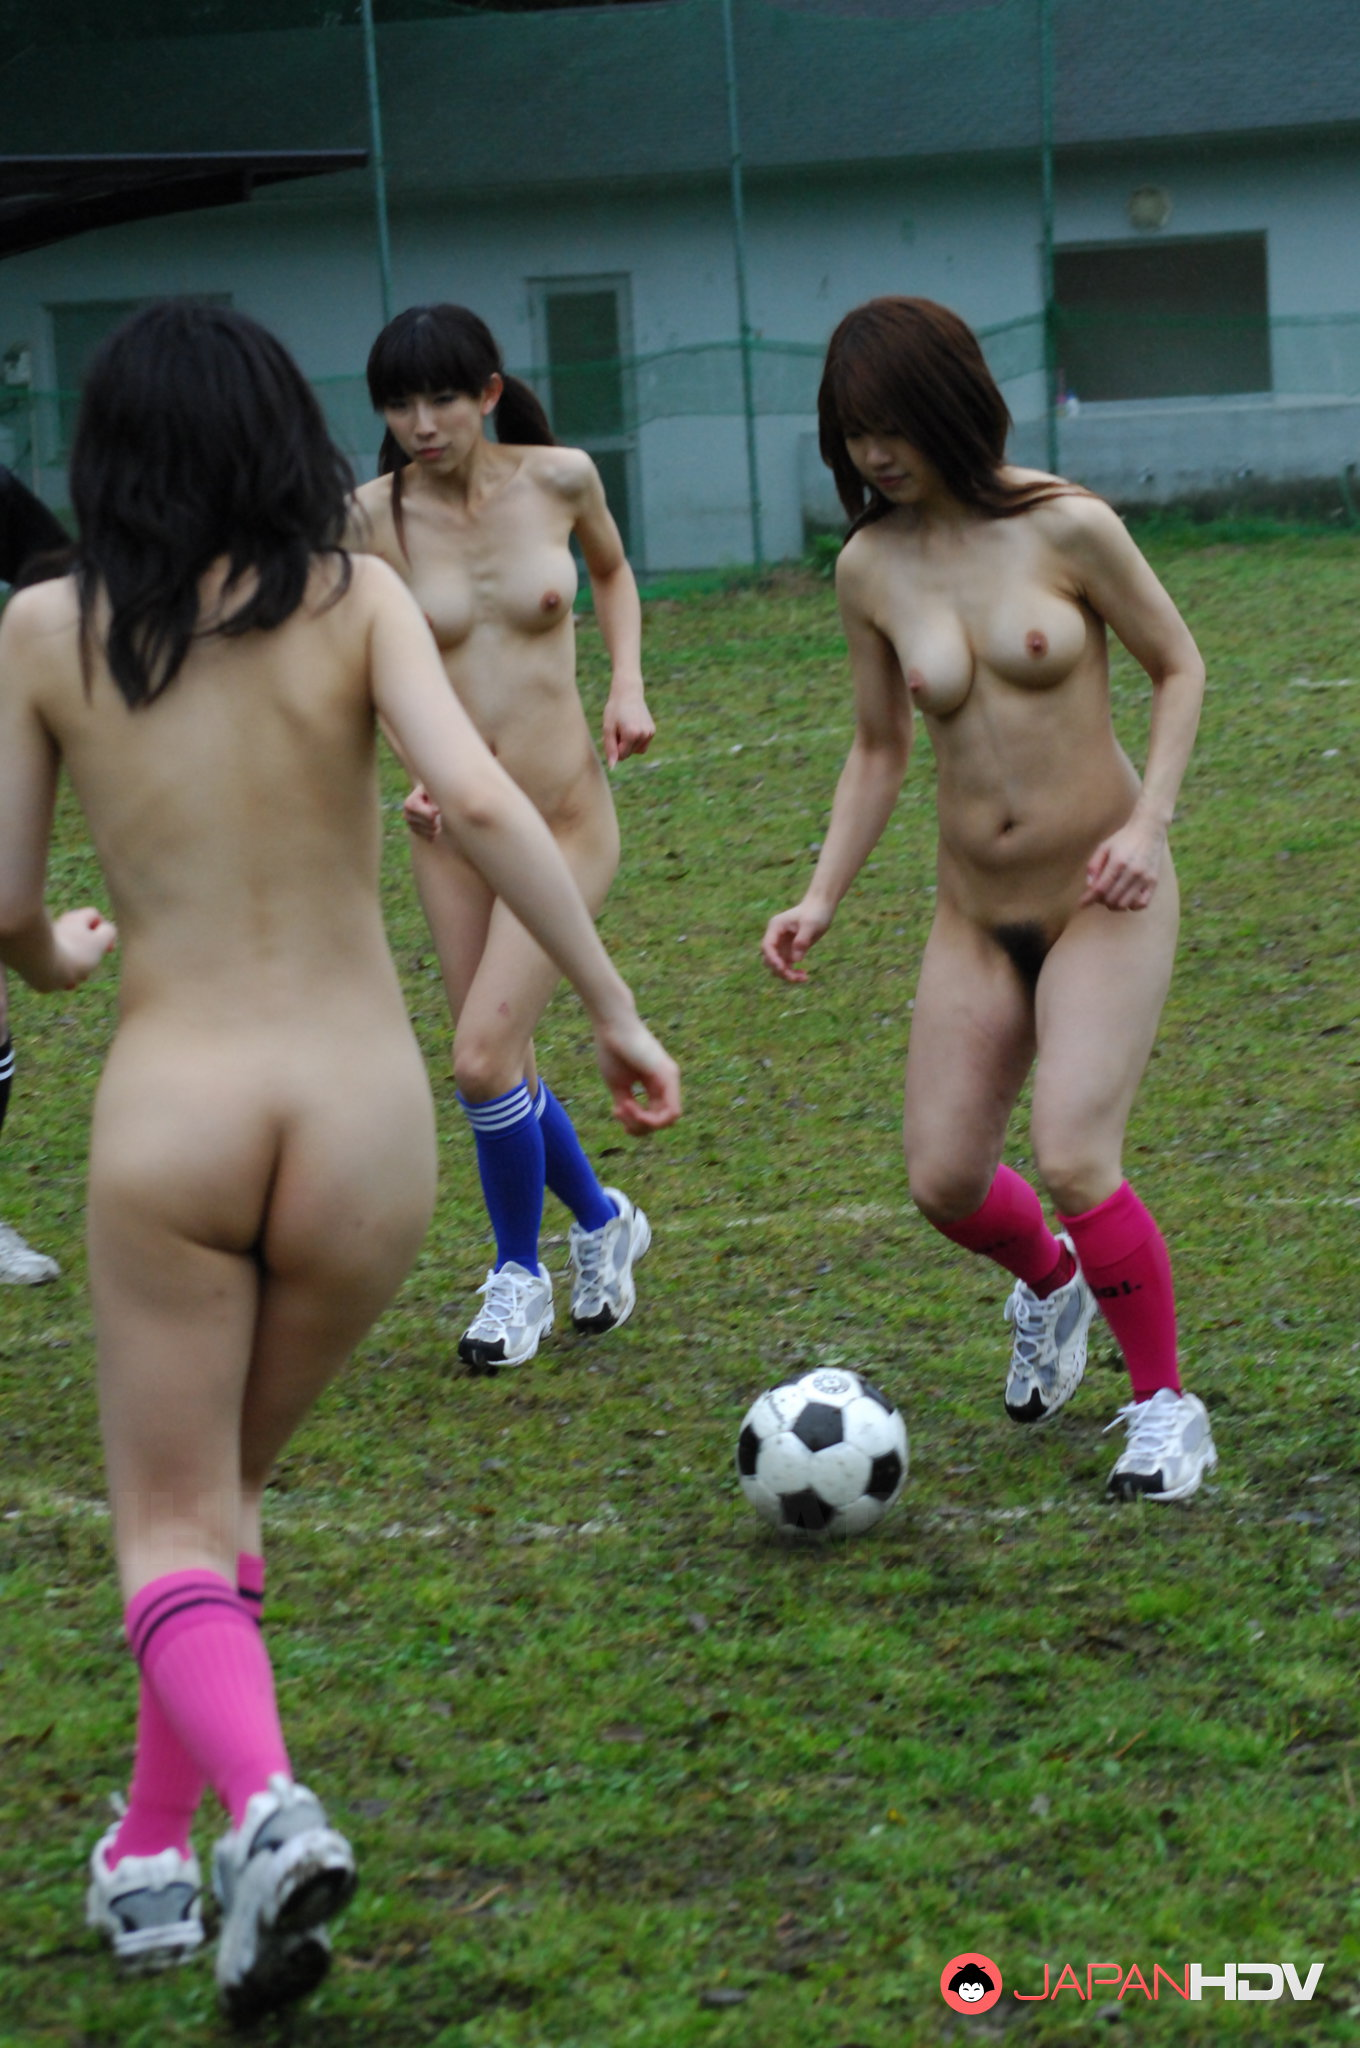 Sexy football hot playing naked girls have hit the